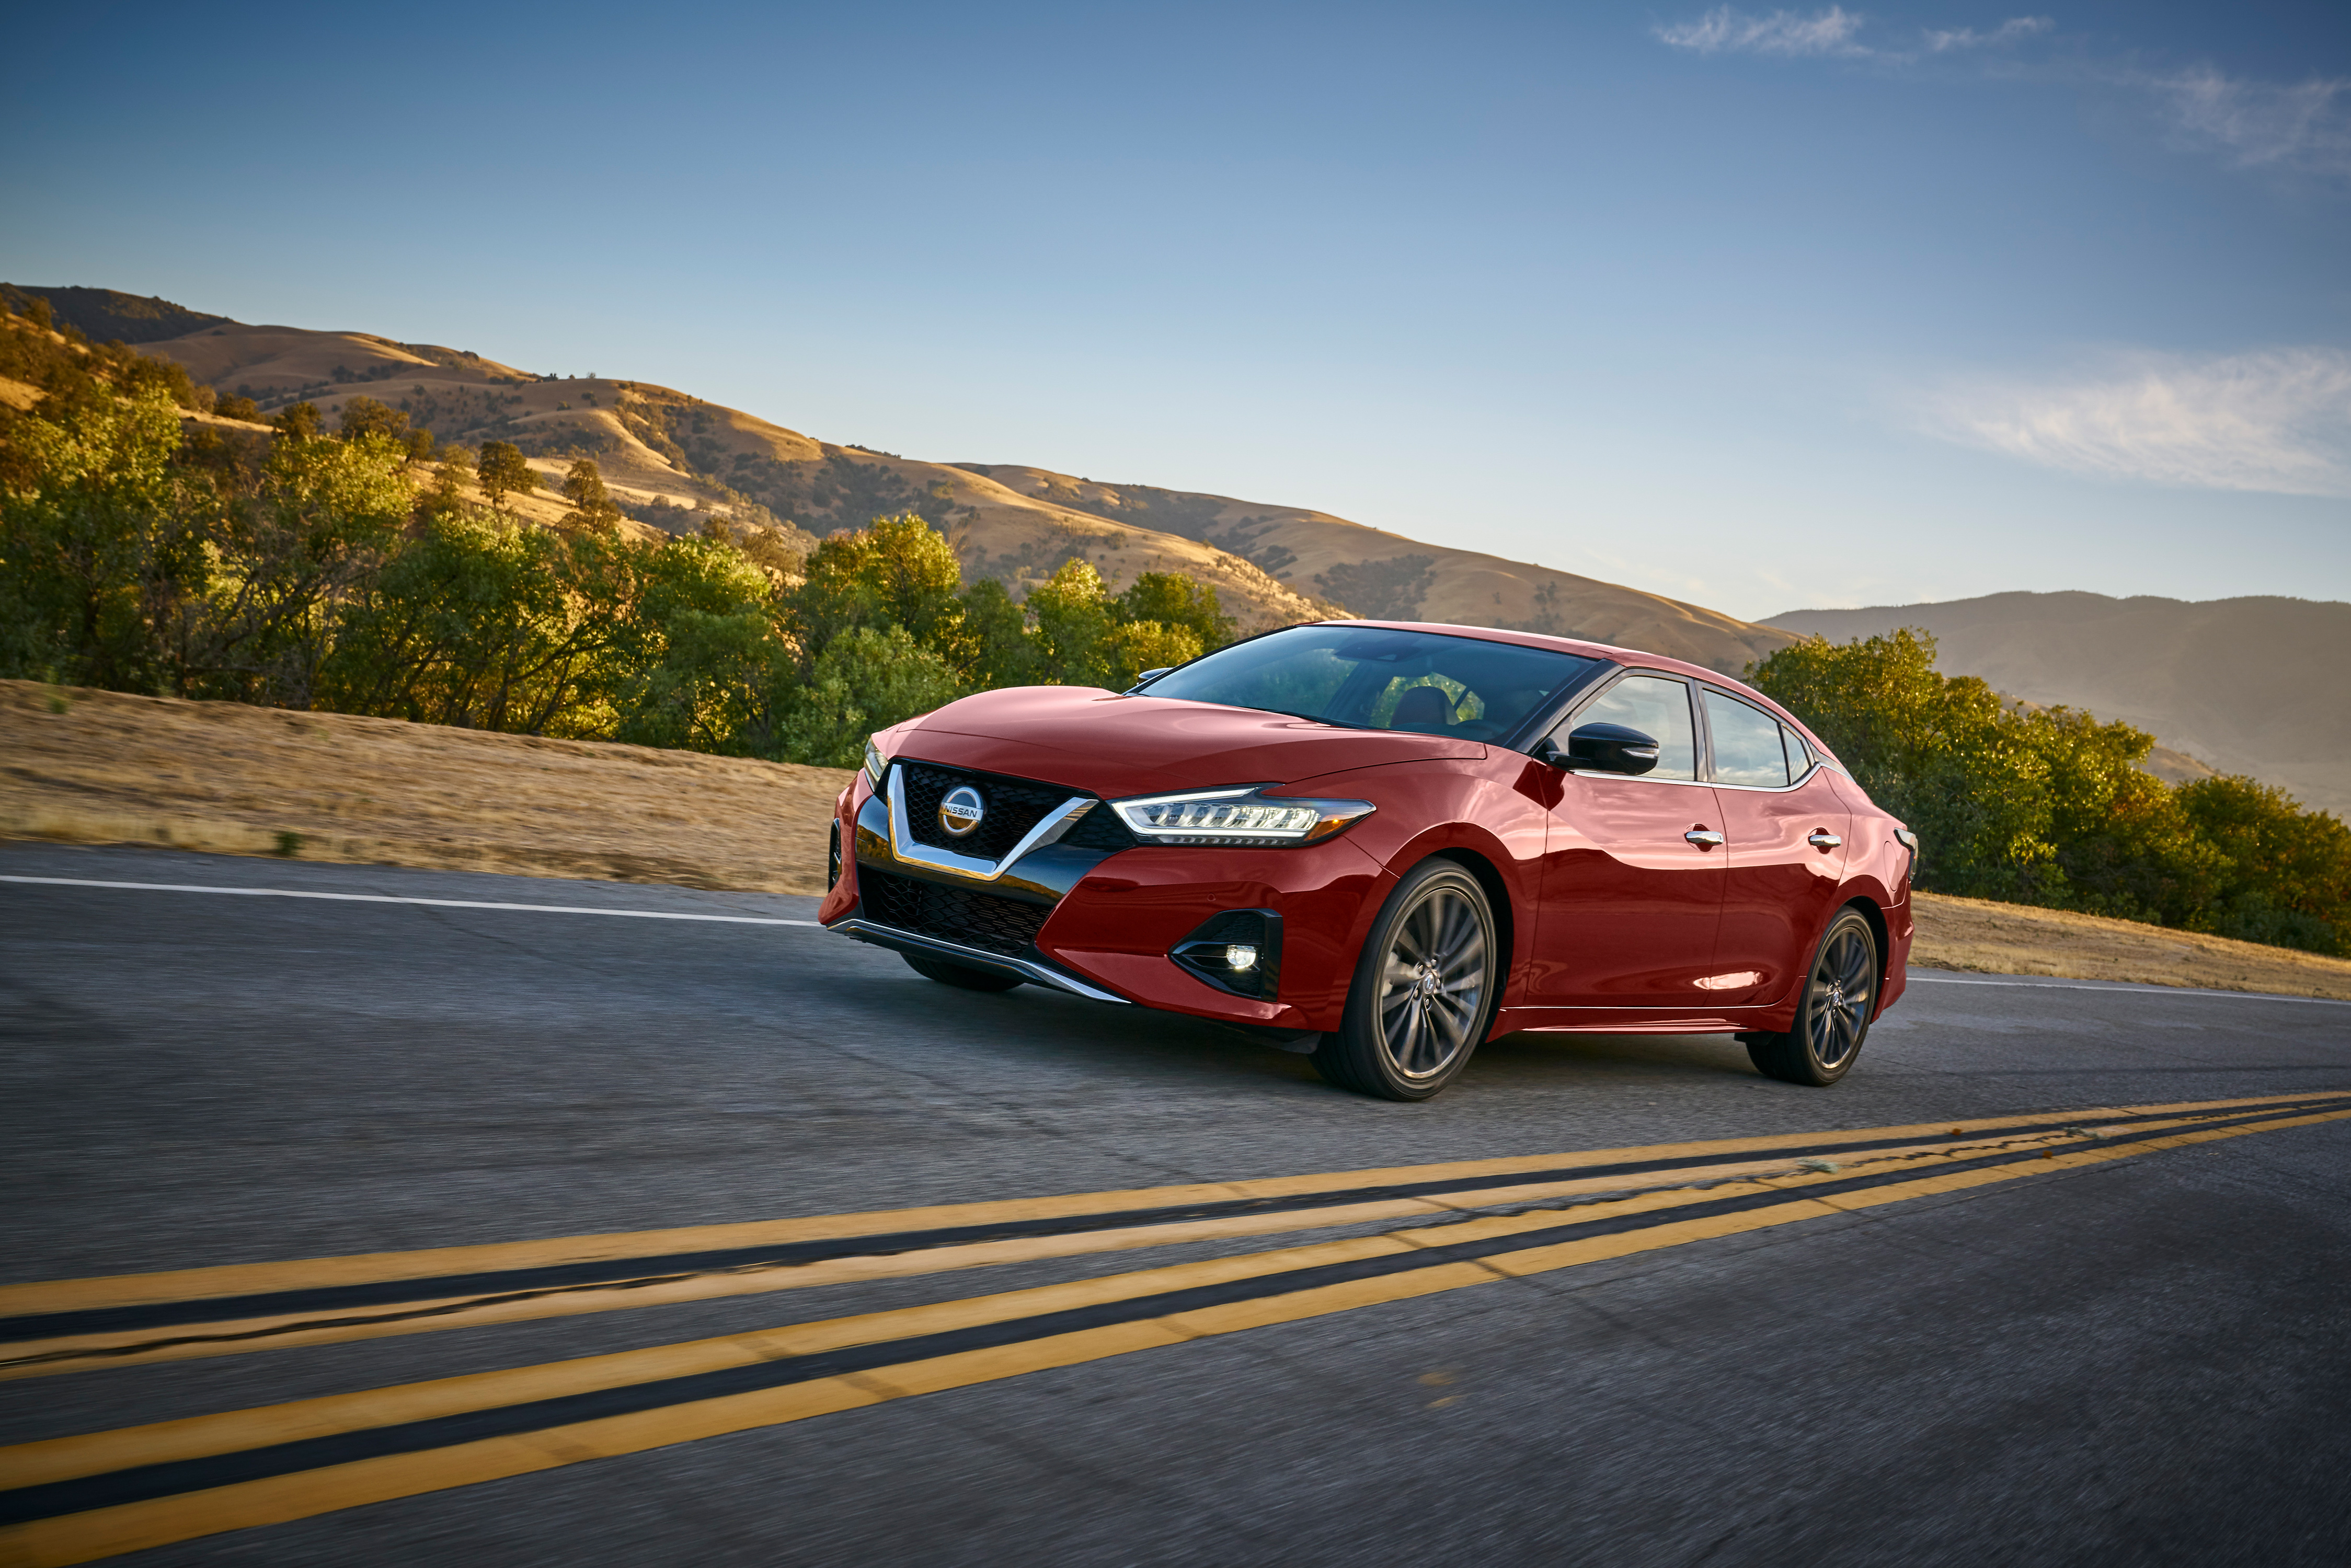 The 2109 Nissan Maxima features a sporty look and upgraded safety